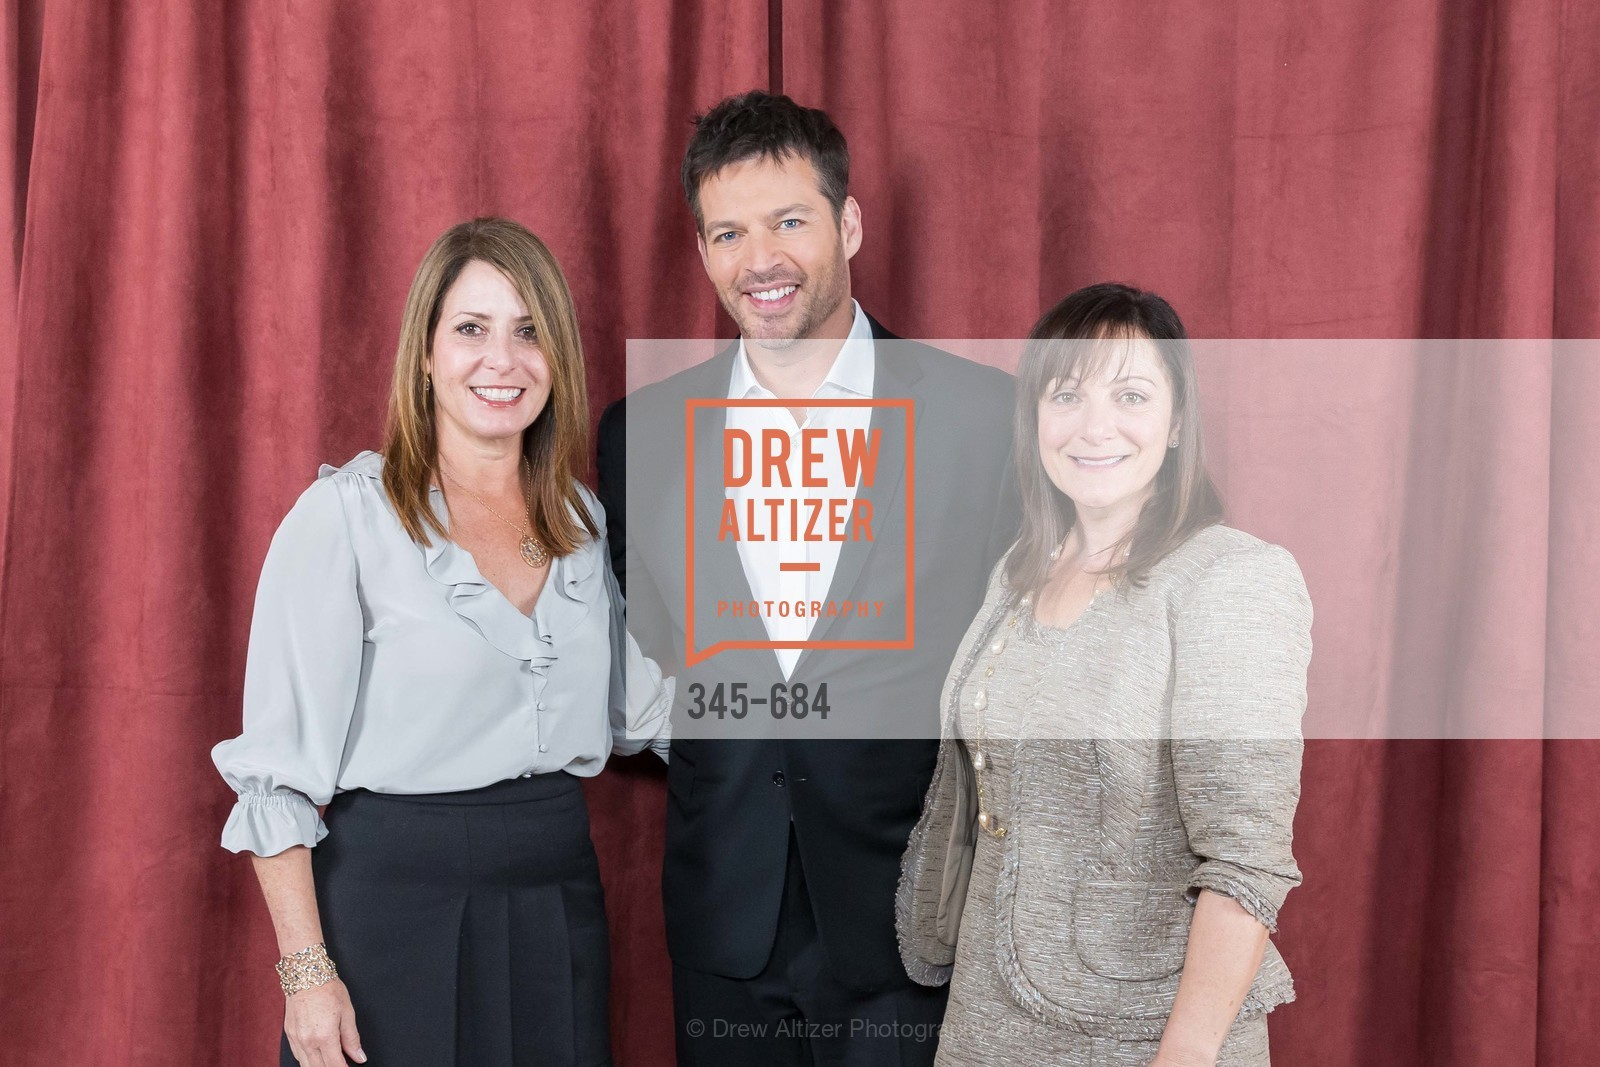 Cynthia Sewell, Harry Connick Jr., Noreen Carruthers, Under One Umbrella, Sharon Heights Golf and Country Club, January 13th, 2016,Drew Altizer, Drew Altizer Photography, full-service agency, private events, San Francisco photographer, photographer california